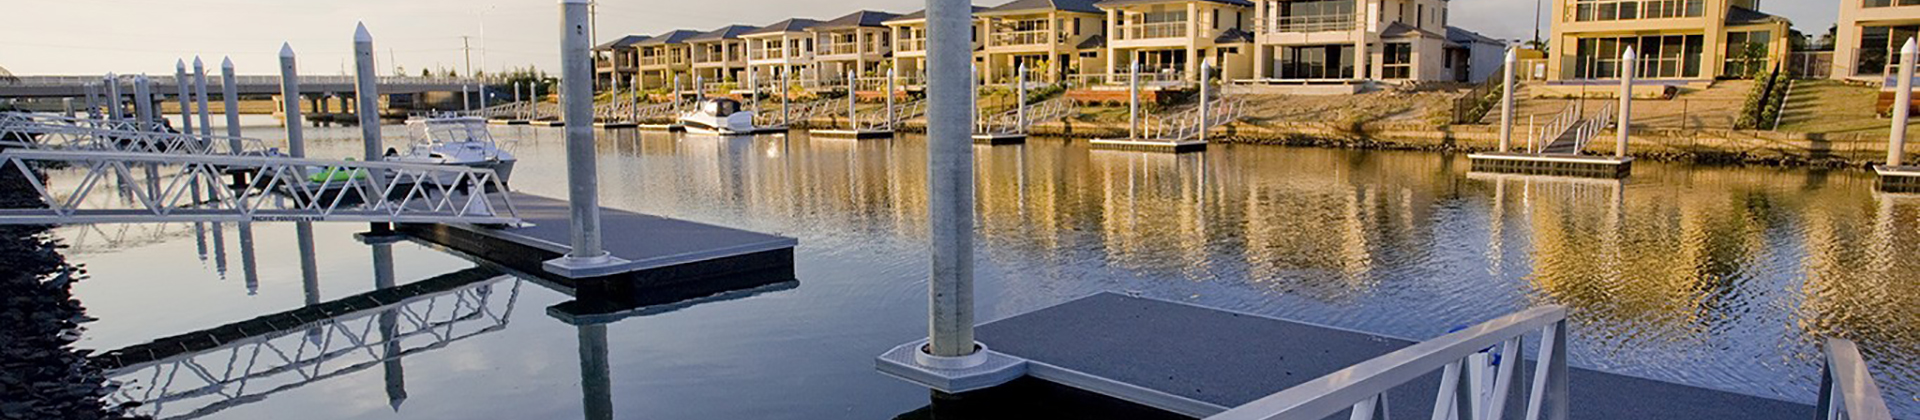 Marinas, Pontoons & Jetties